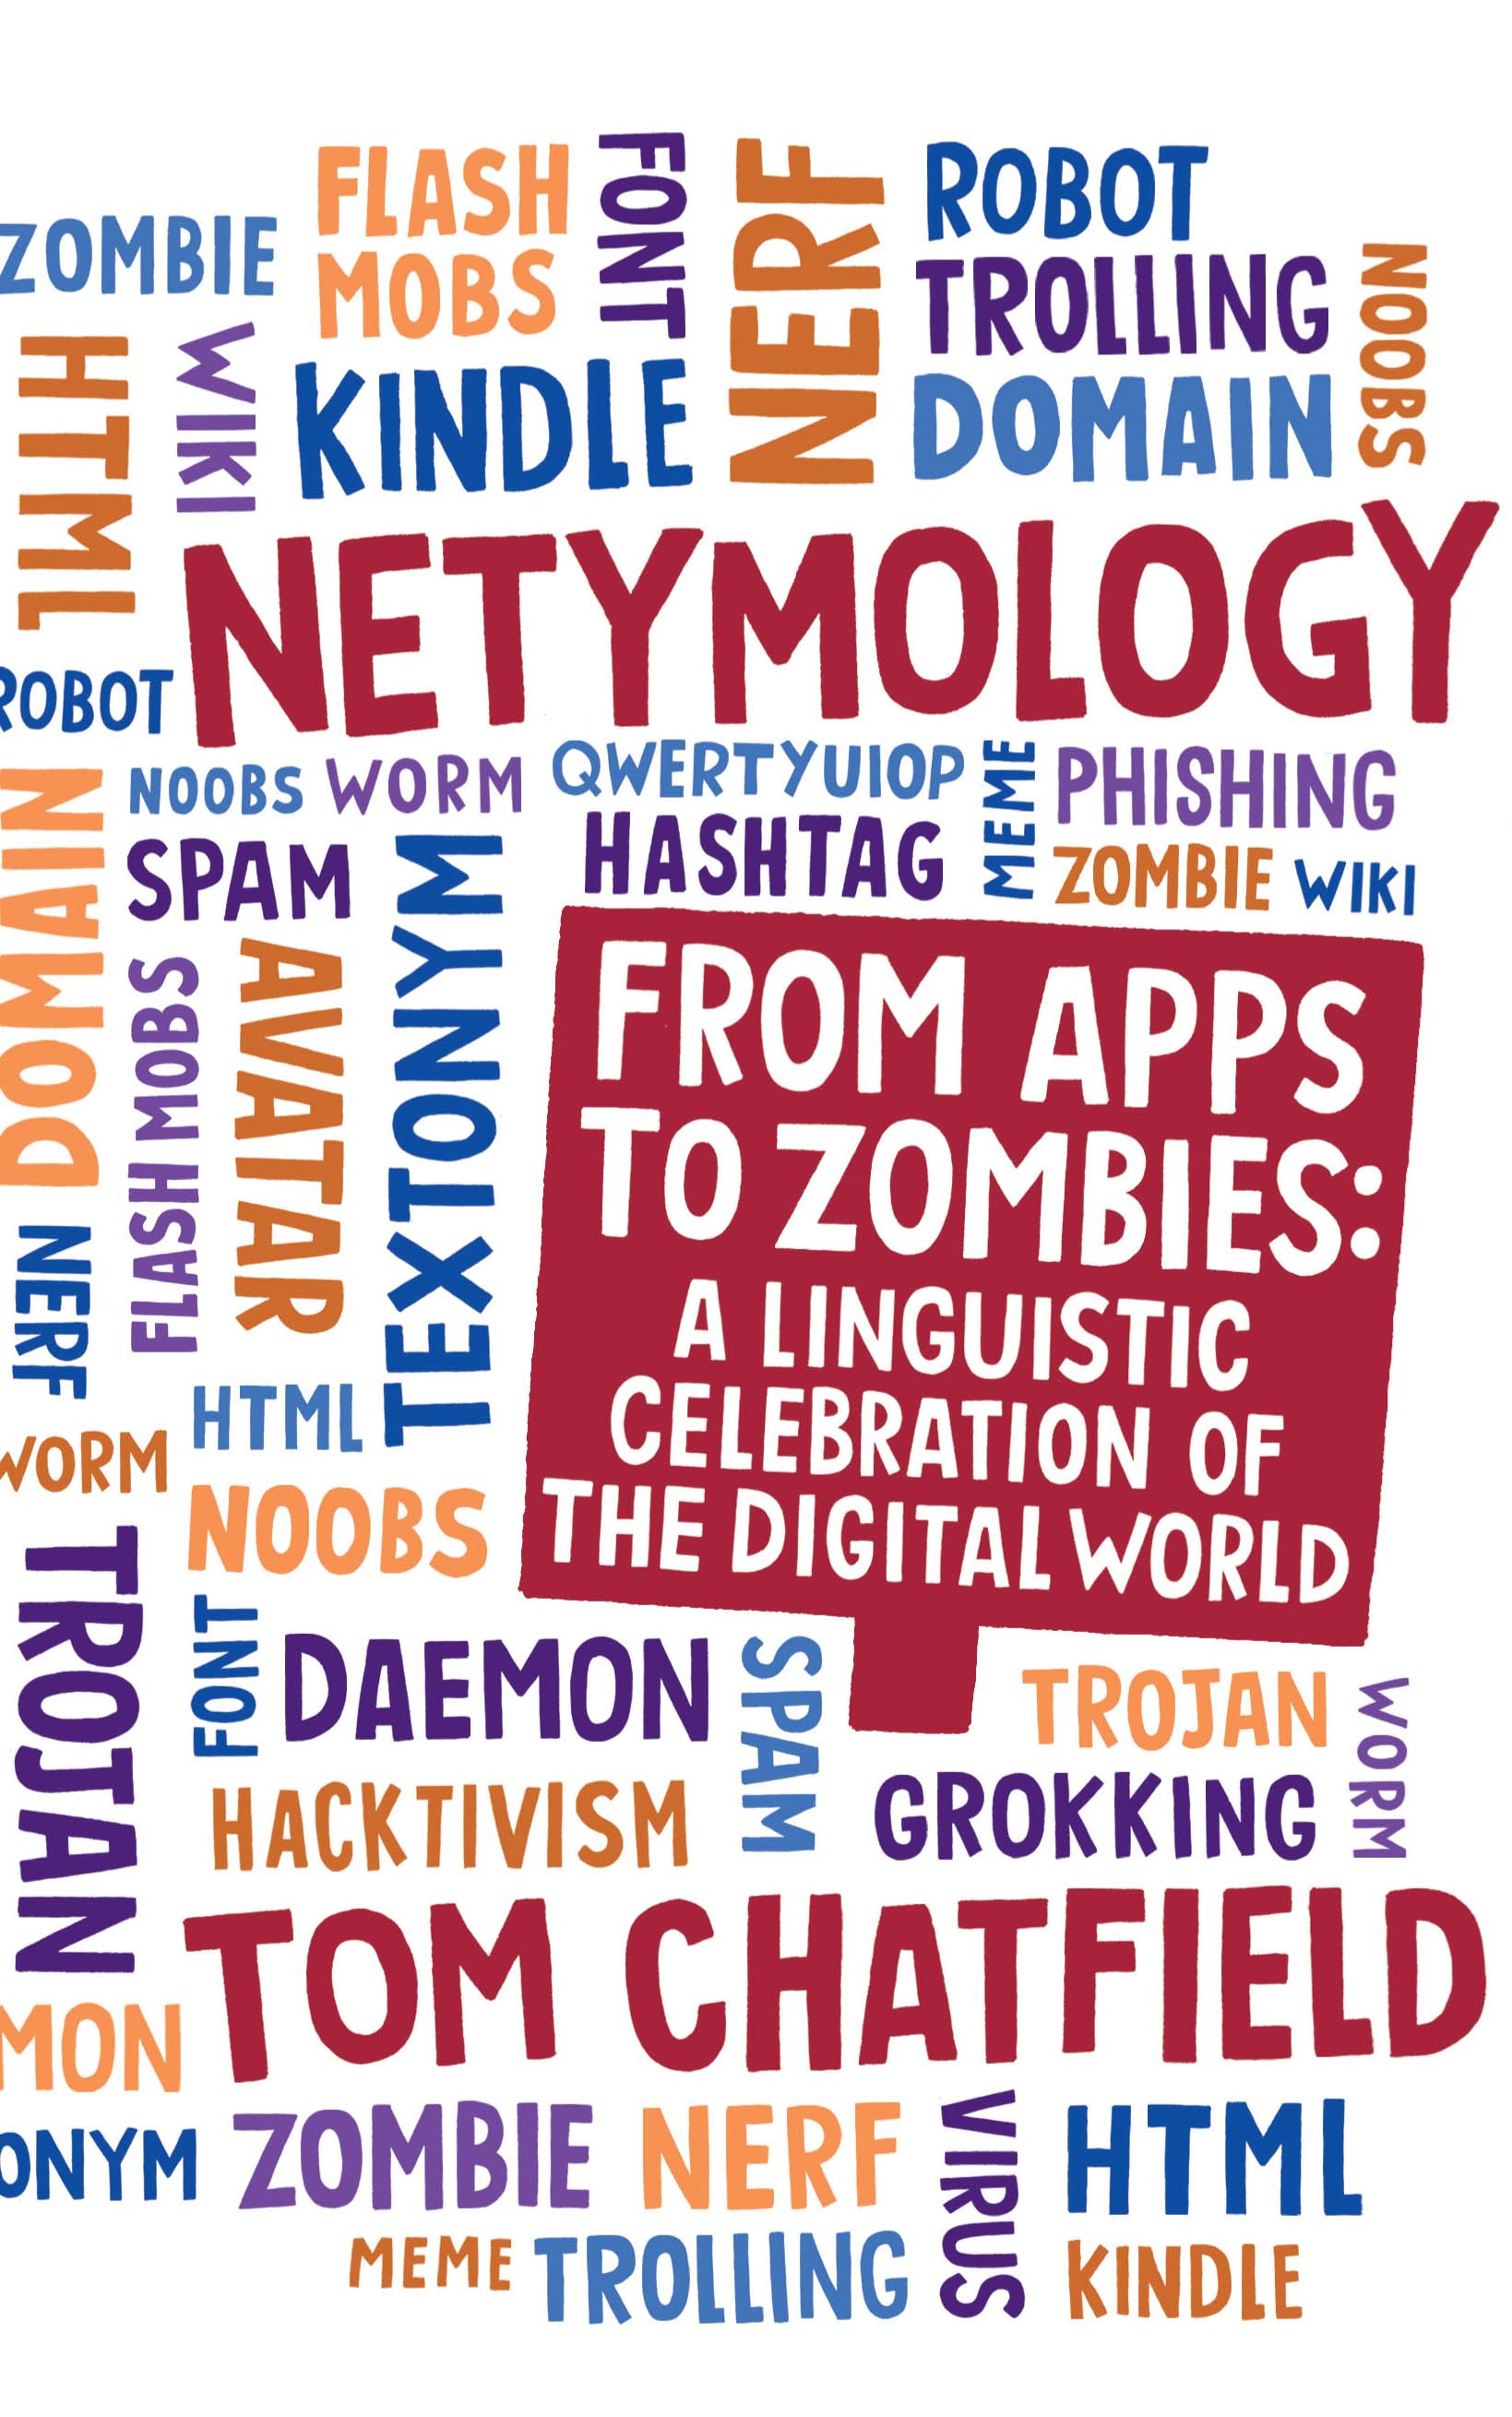 Netymology From Apps to Zombies: A Linguistic Celebration of the Digital World